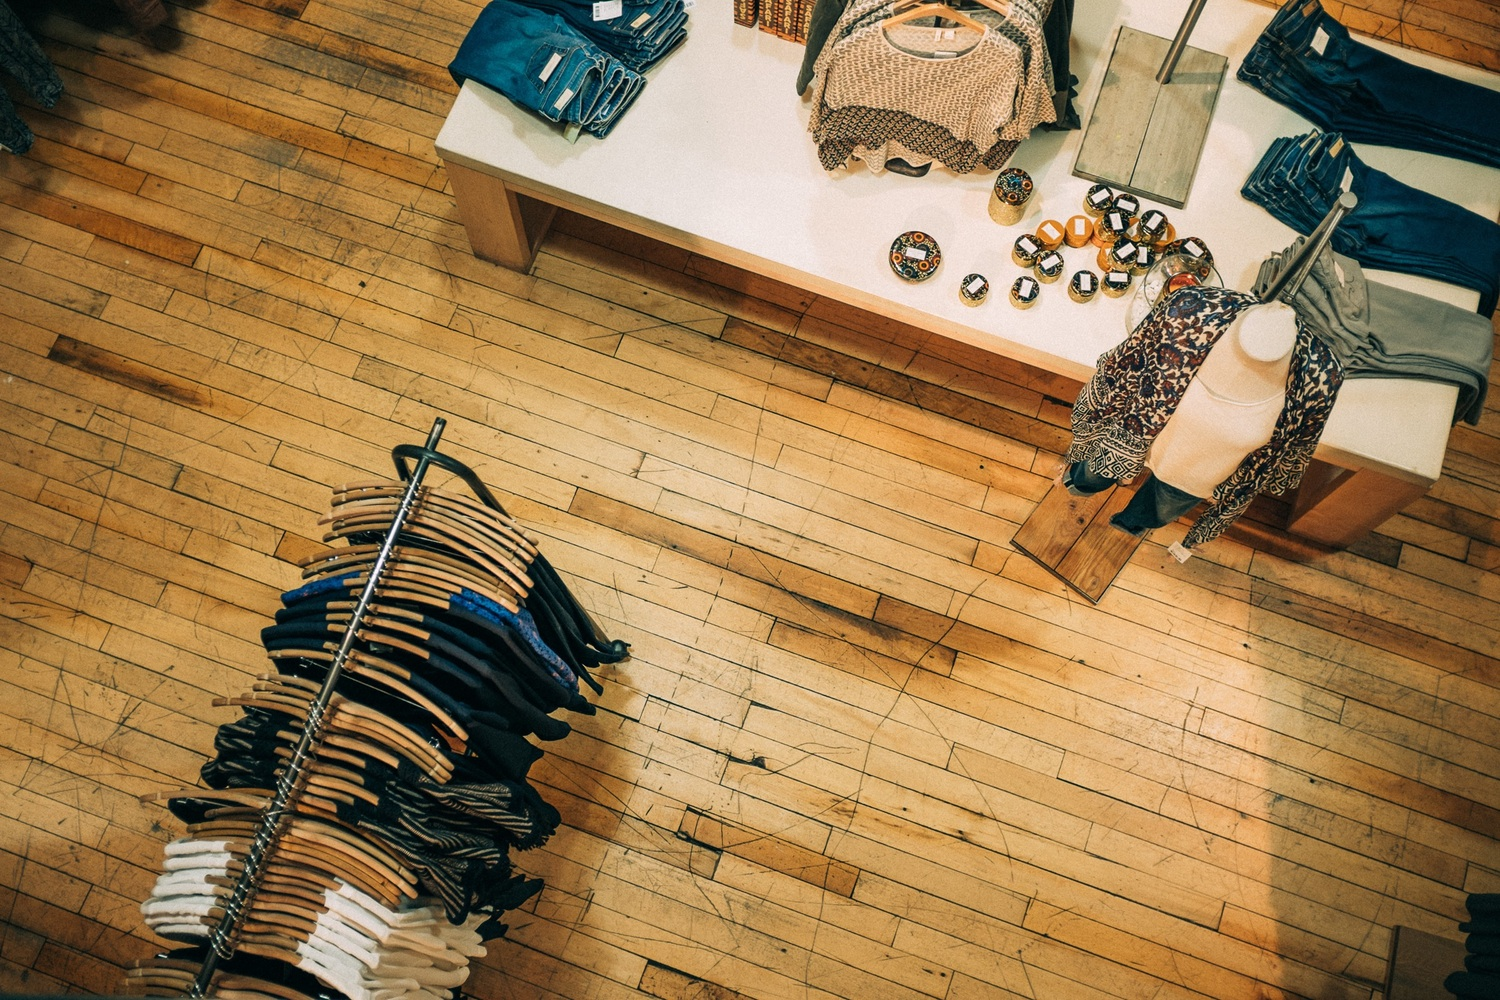 Beacons can boost in-store advertising efforts. But are business ready?